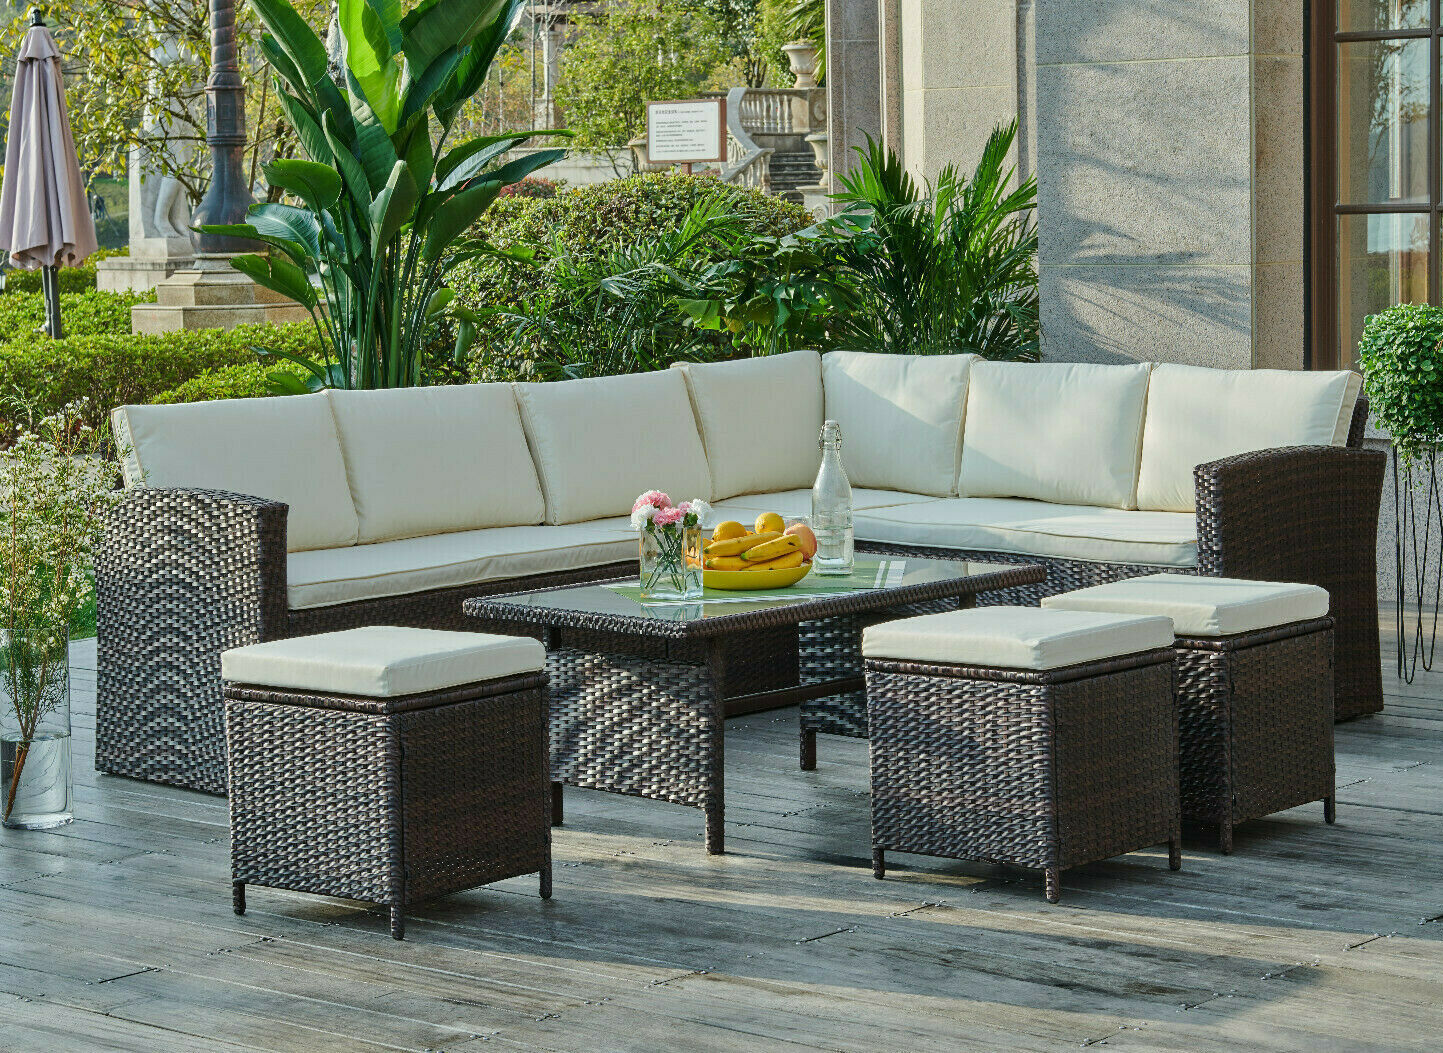 Garden Furniture - Rattan Corner Garden Furniture Set Black Brown Grey Dining or Coffee Table